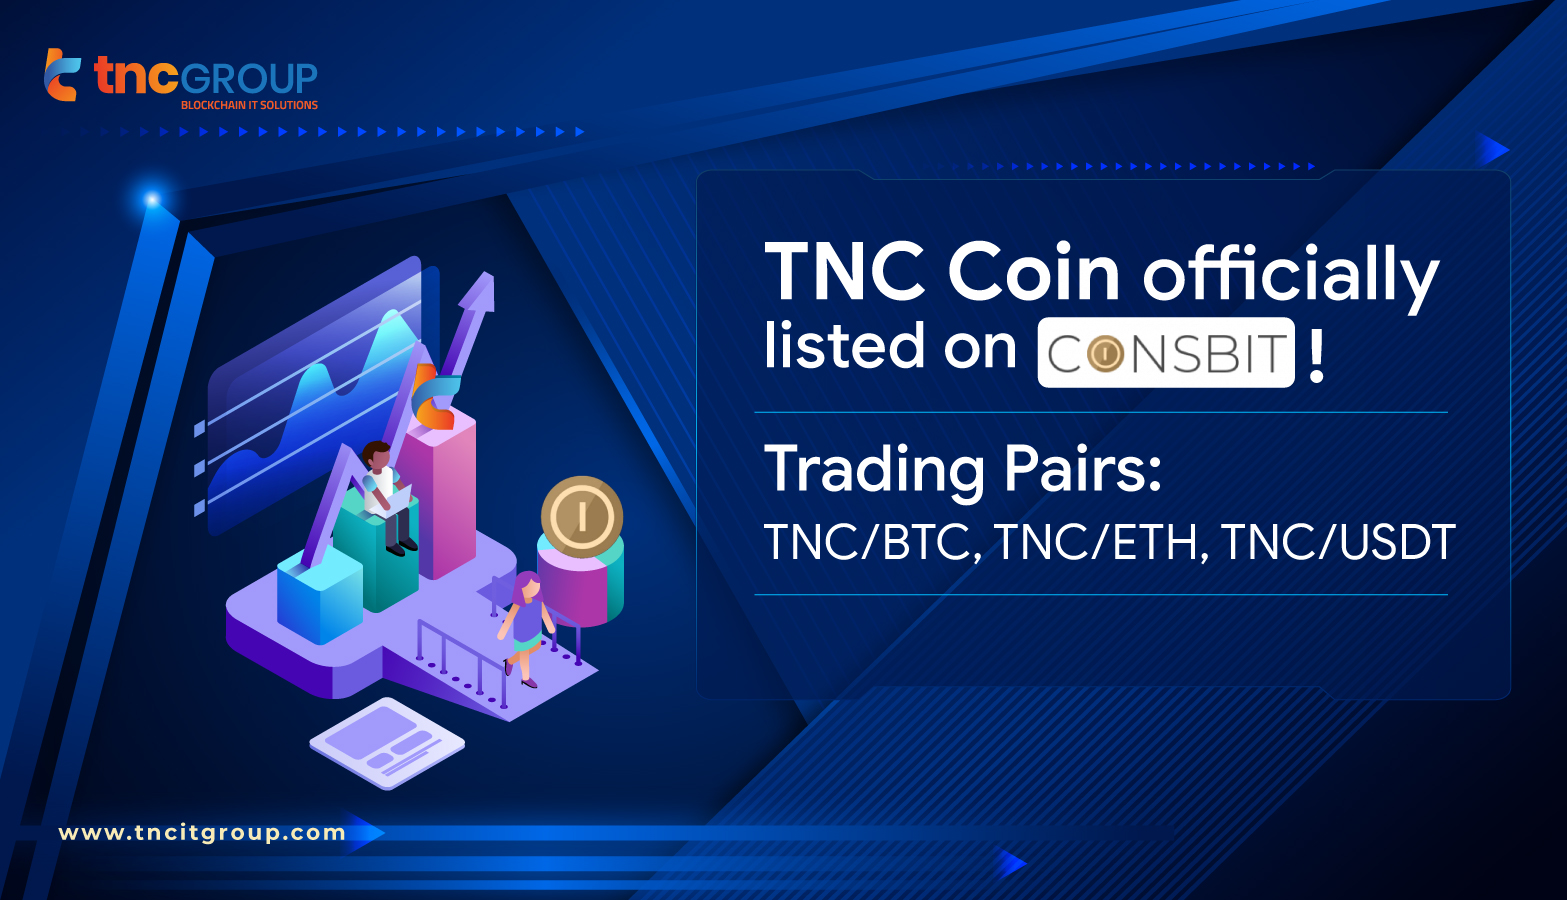 TNC Coin officially listed on COINSBIT